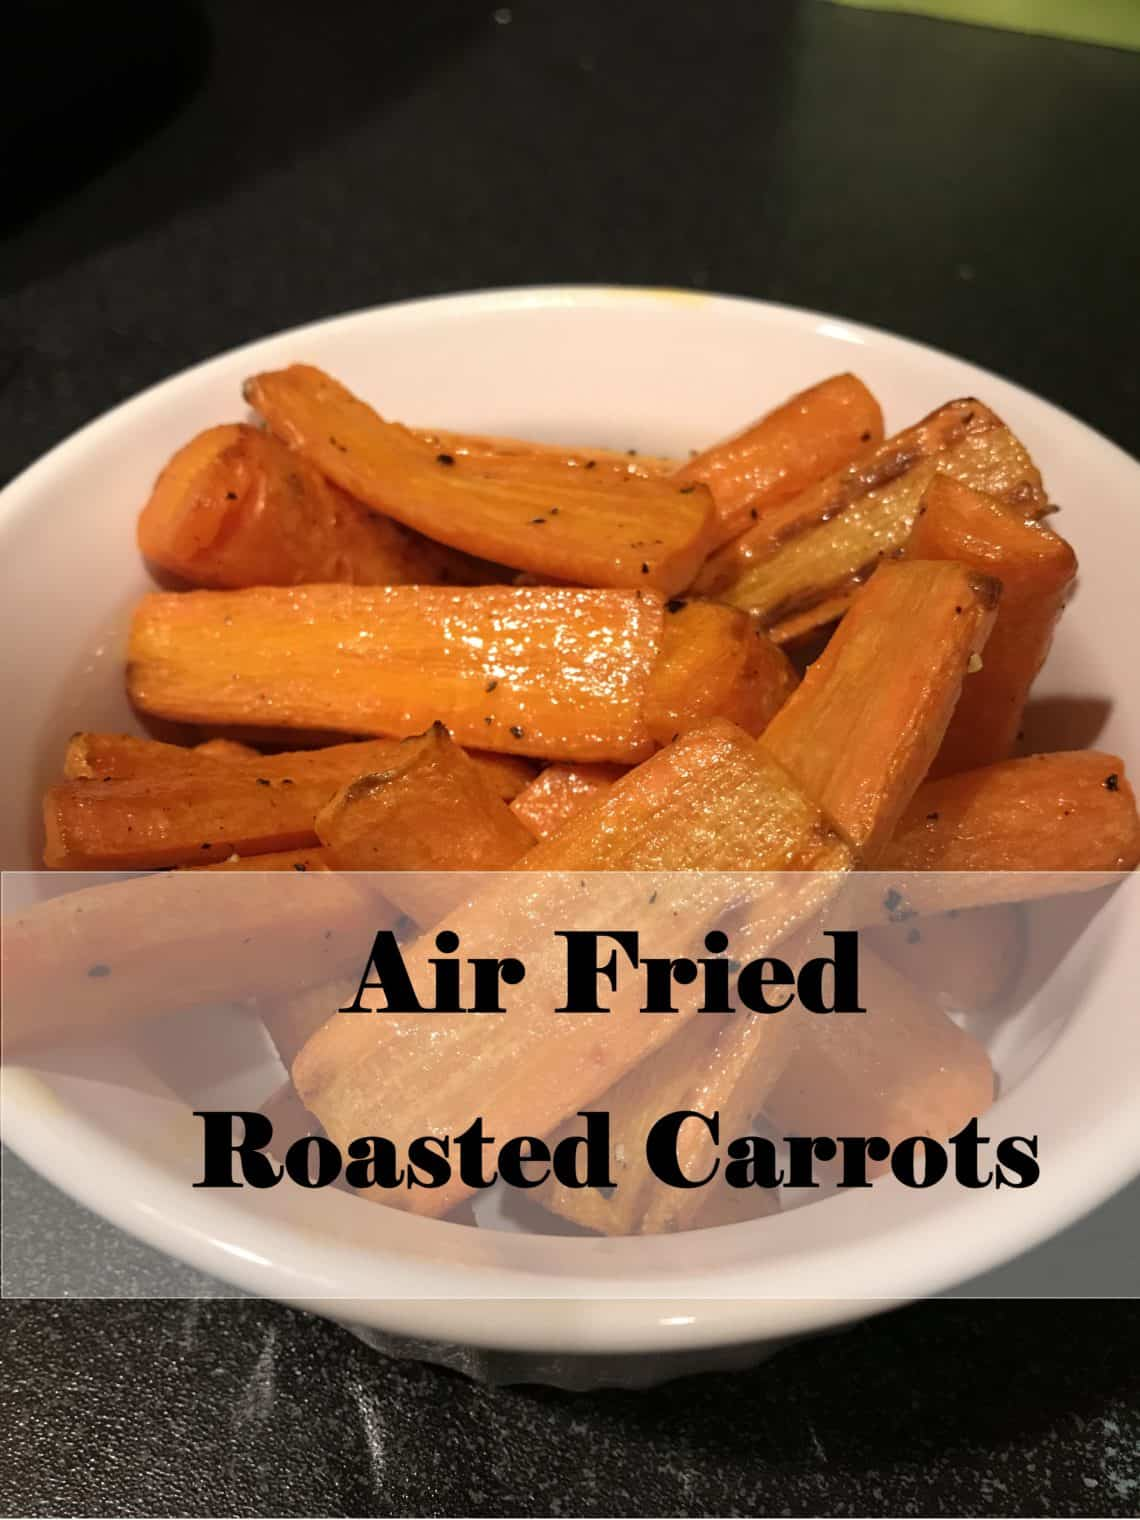 Making roasted vegetables has never been so easy. These taste just like they came out of the oven! The difference? Less time and less oil. #cooking #yummy #healthy